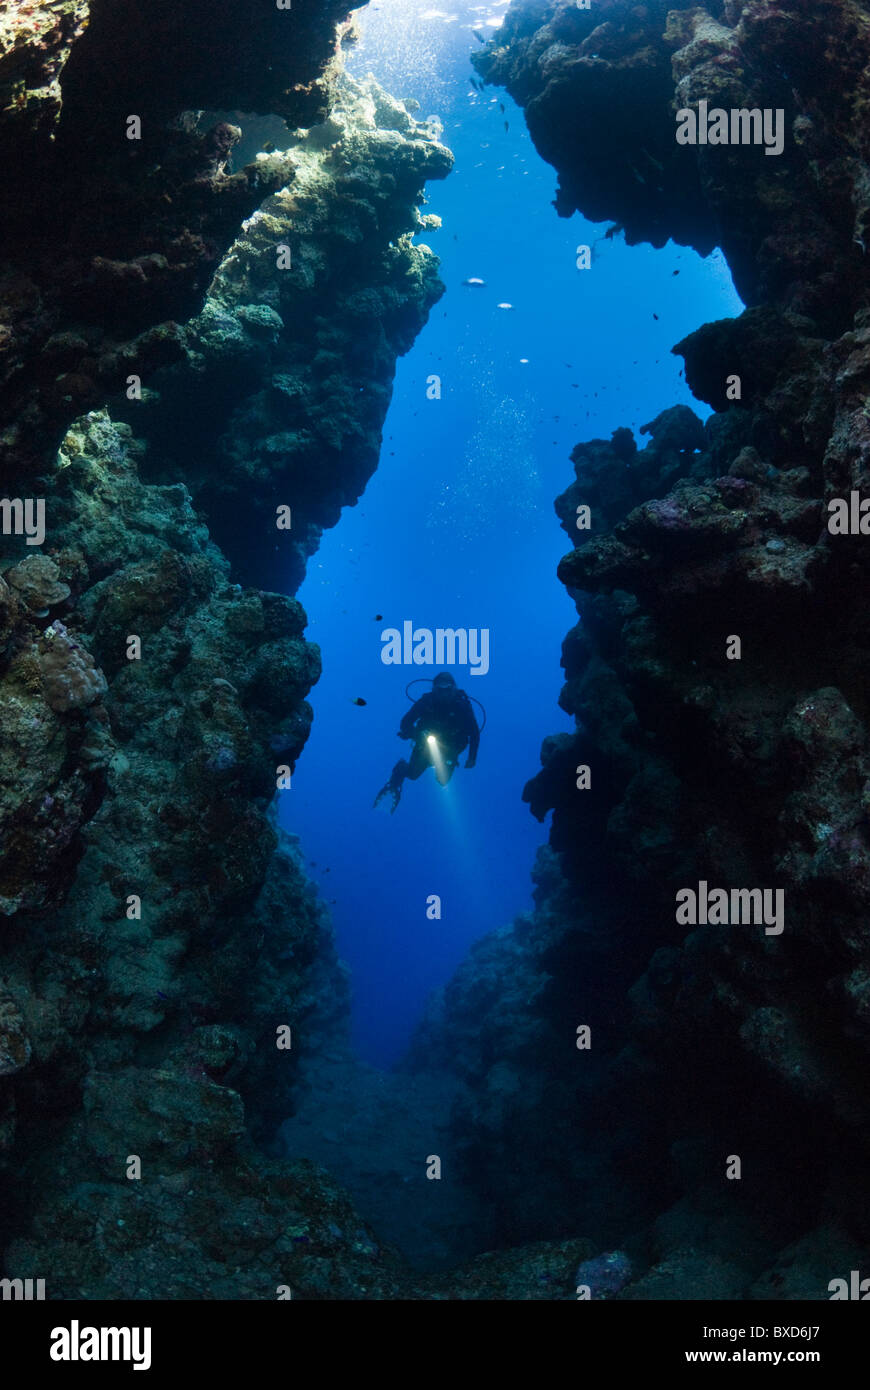 Scuba diver in the crack, The Bells, Dahab, Egypt, Red Sea Stock Photo